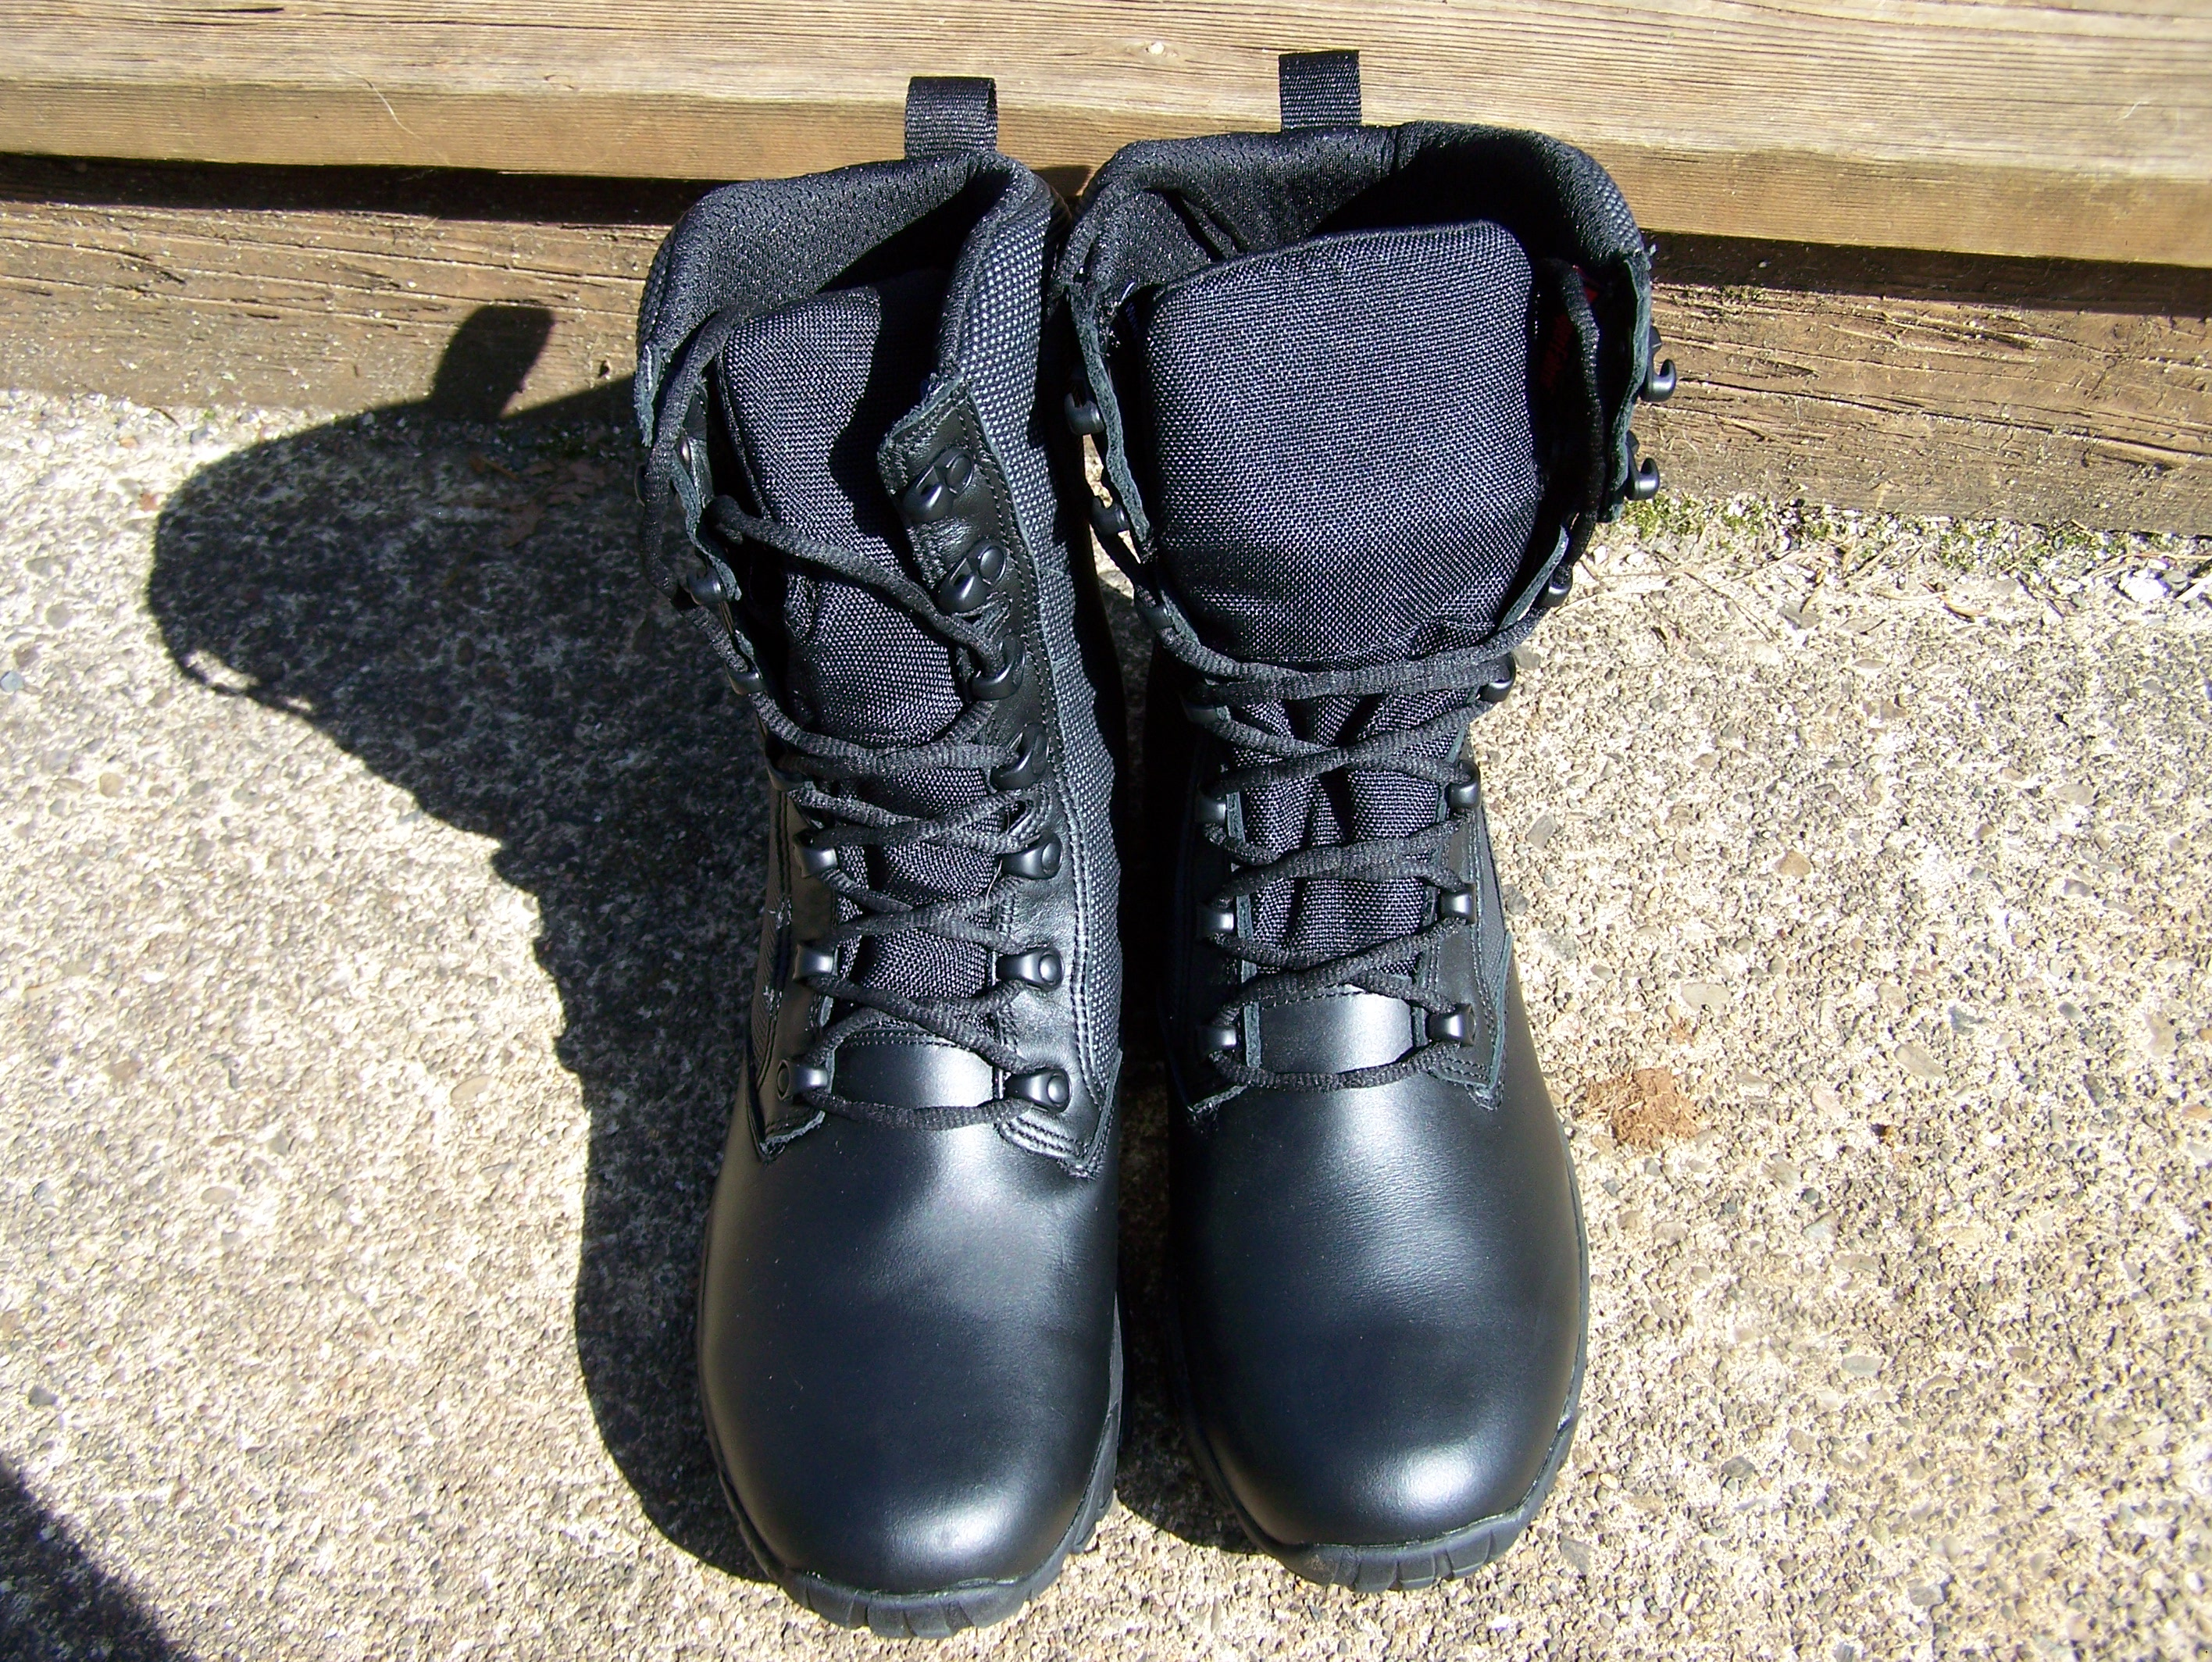 Review: Altai MFT100 Tactical Boots